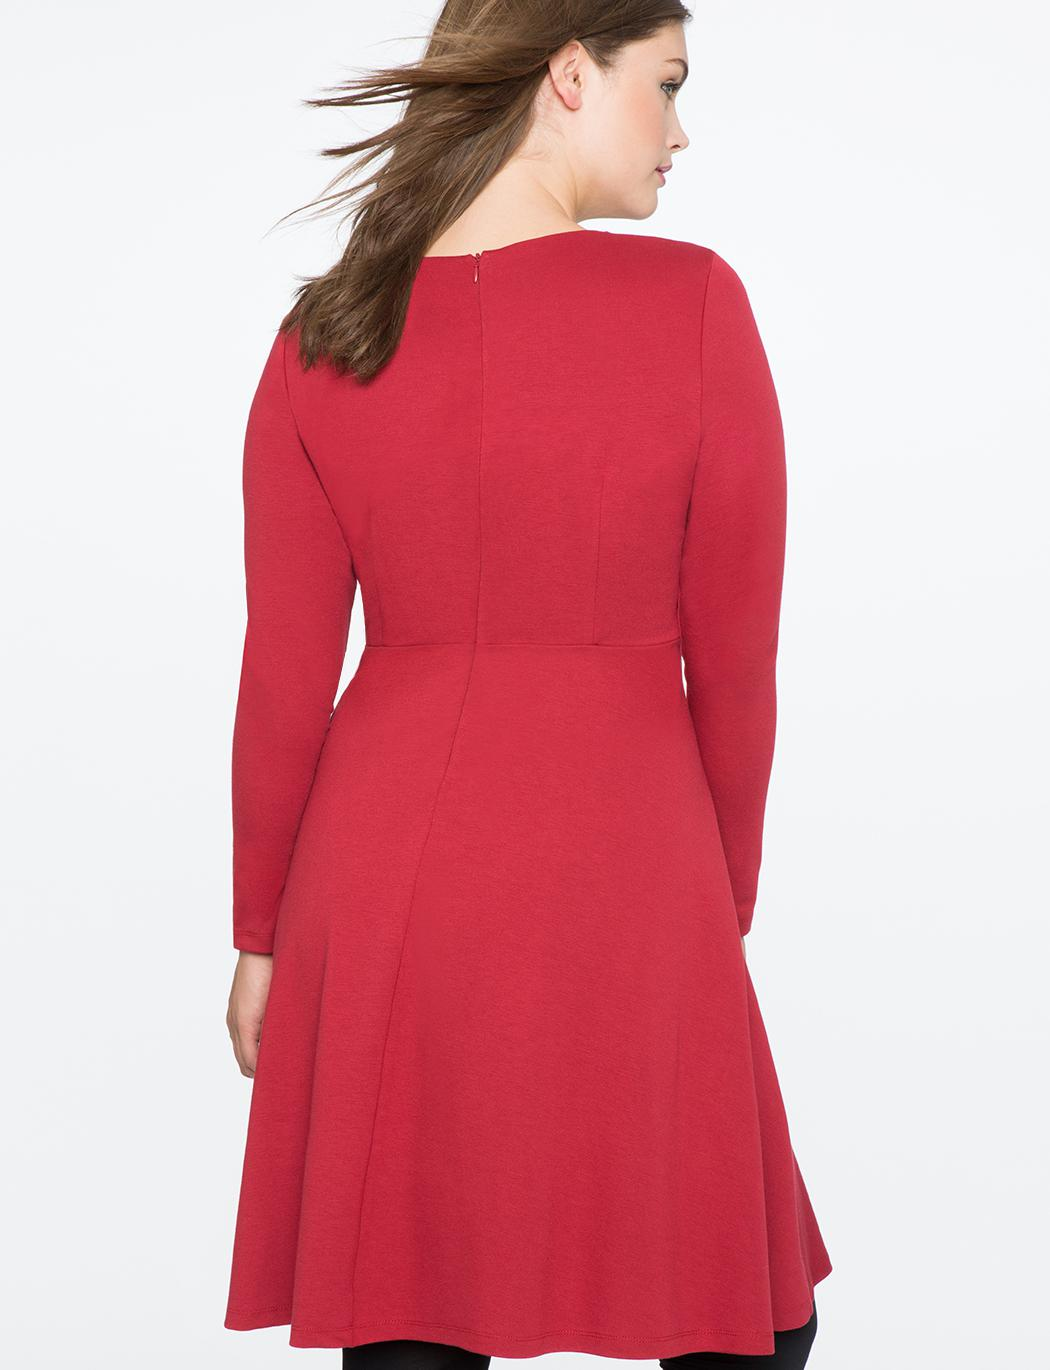 513601f618c Lyst - Eloquii Fit And Flare Dress With Slit Detail in Red